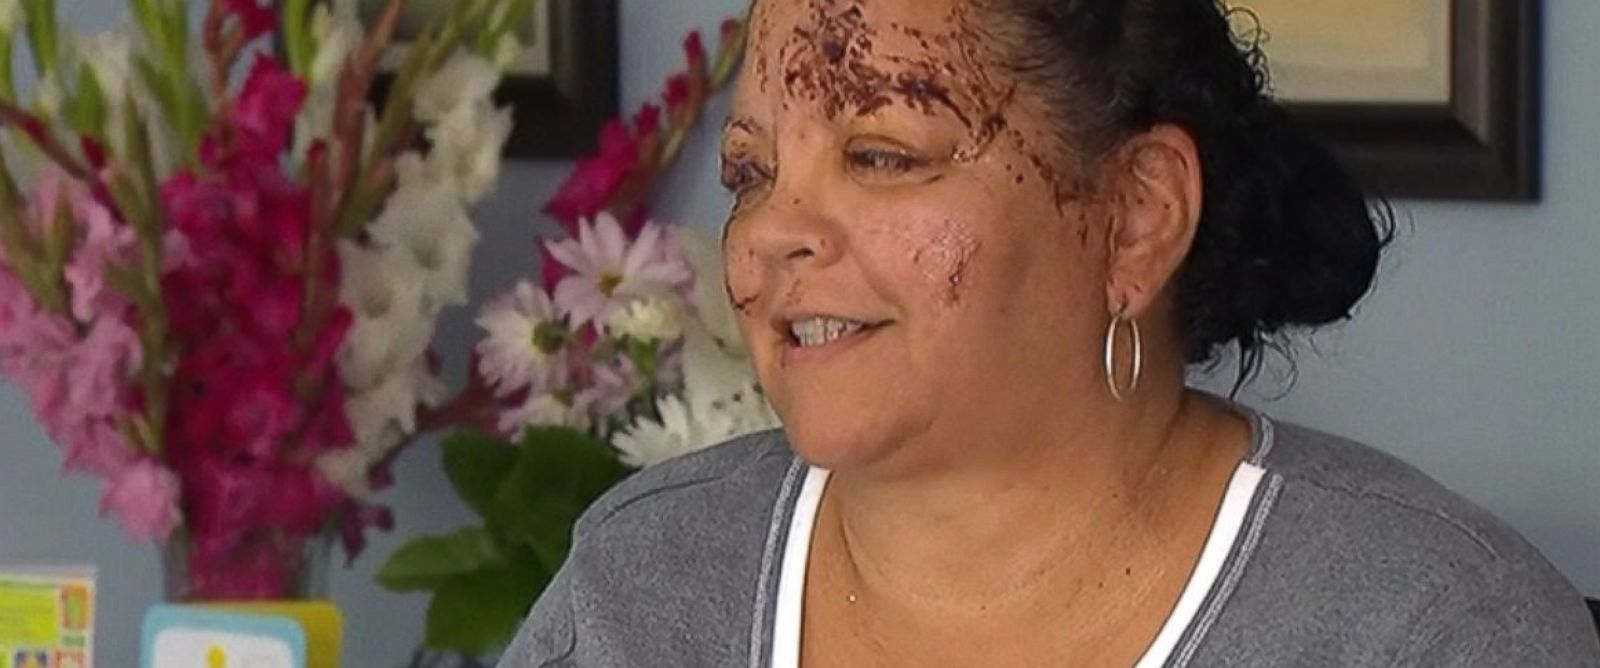 PHOTO: A Washington grandmother and grandson were attacked by an otter while swimming in a watering hole.